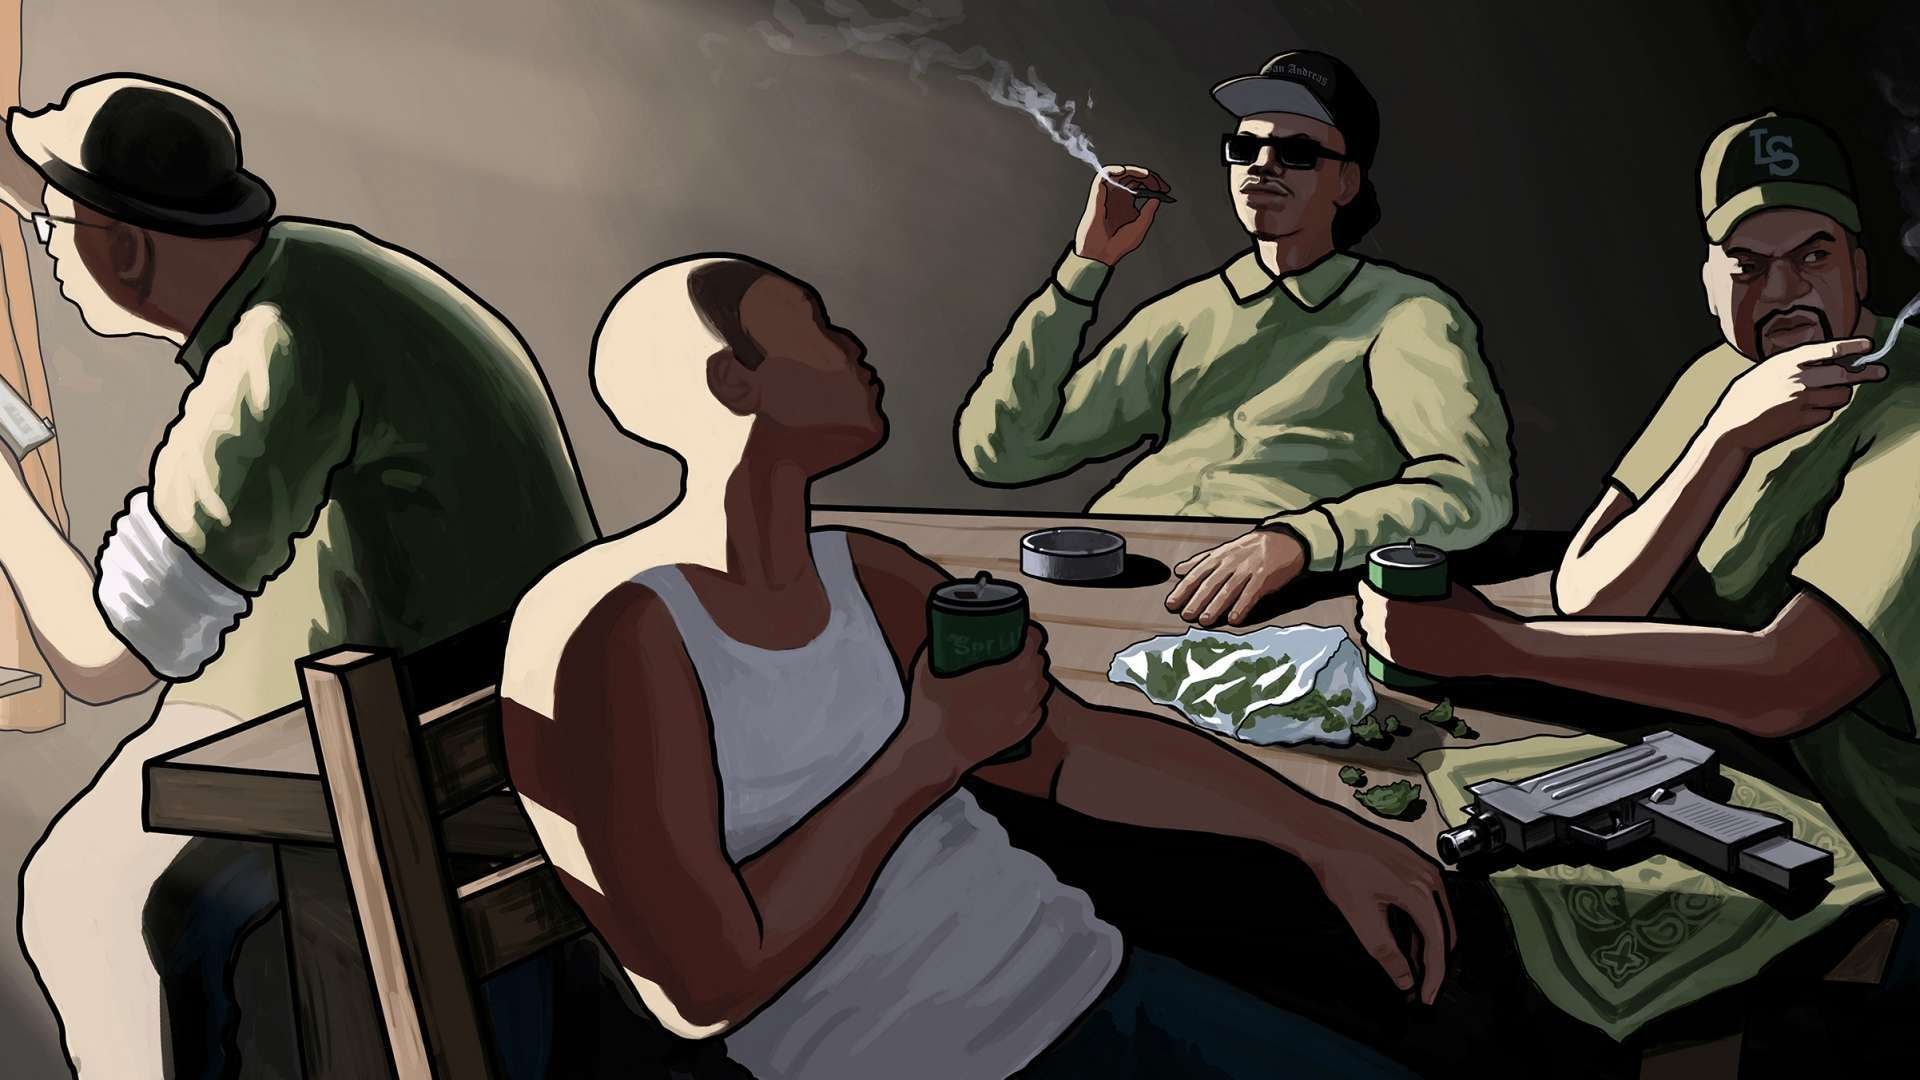 gtasanandreas Wallpaper Grand Theft Auto San Andreas Hd 1920x1080